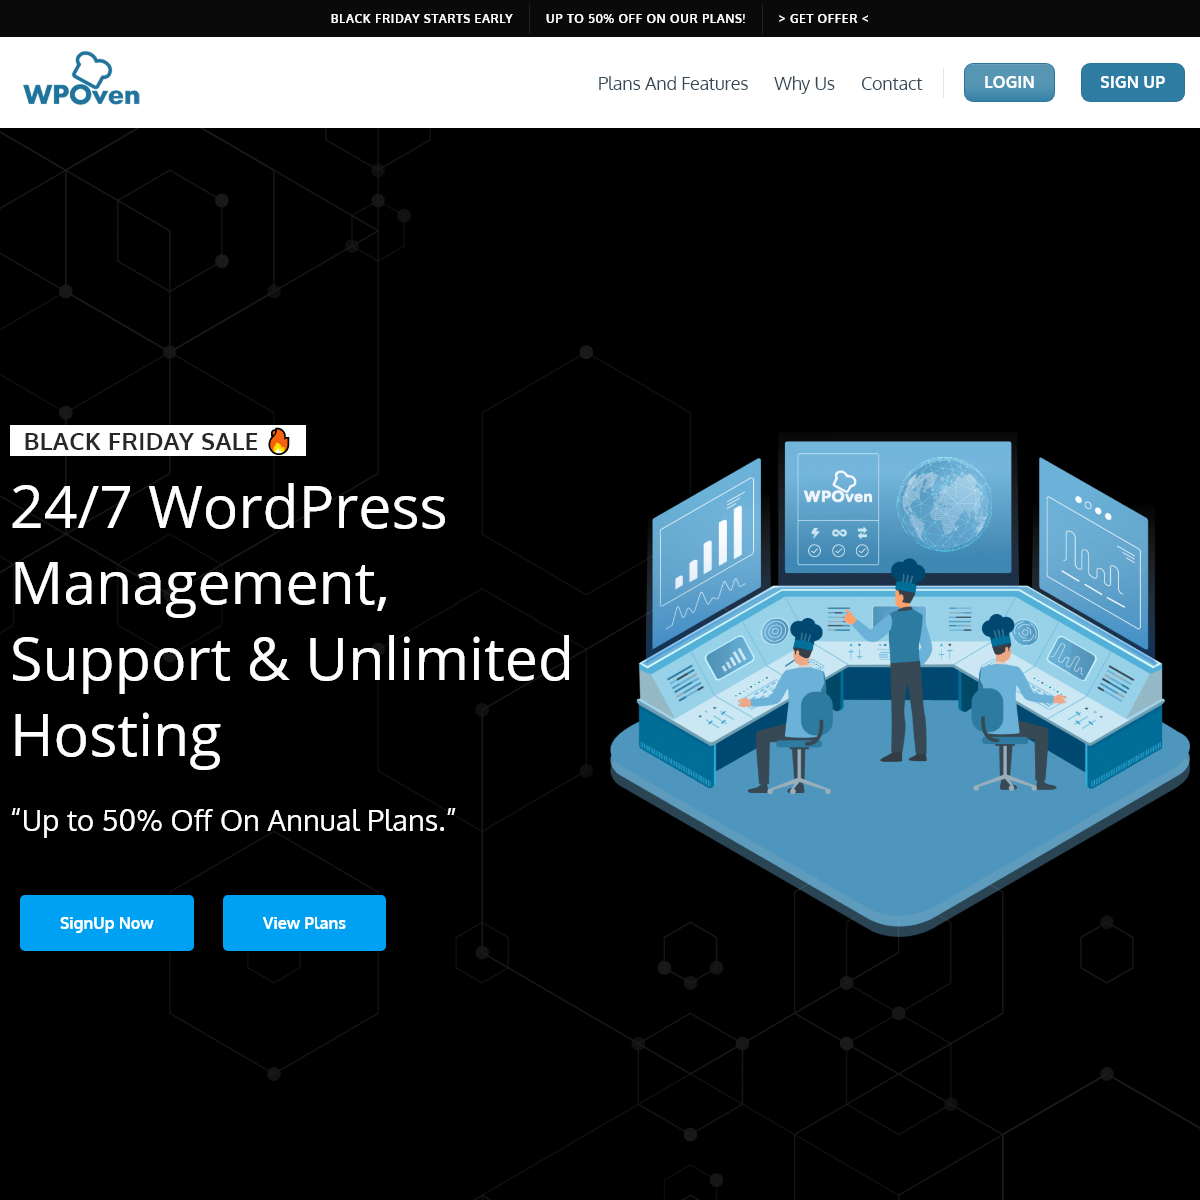 WPOven- Managed WordPress Hosting For Fast And Unlimited Sites